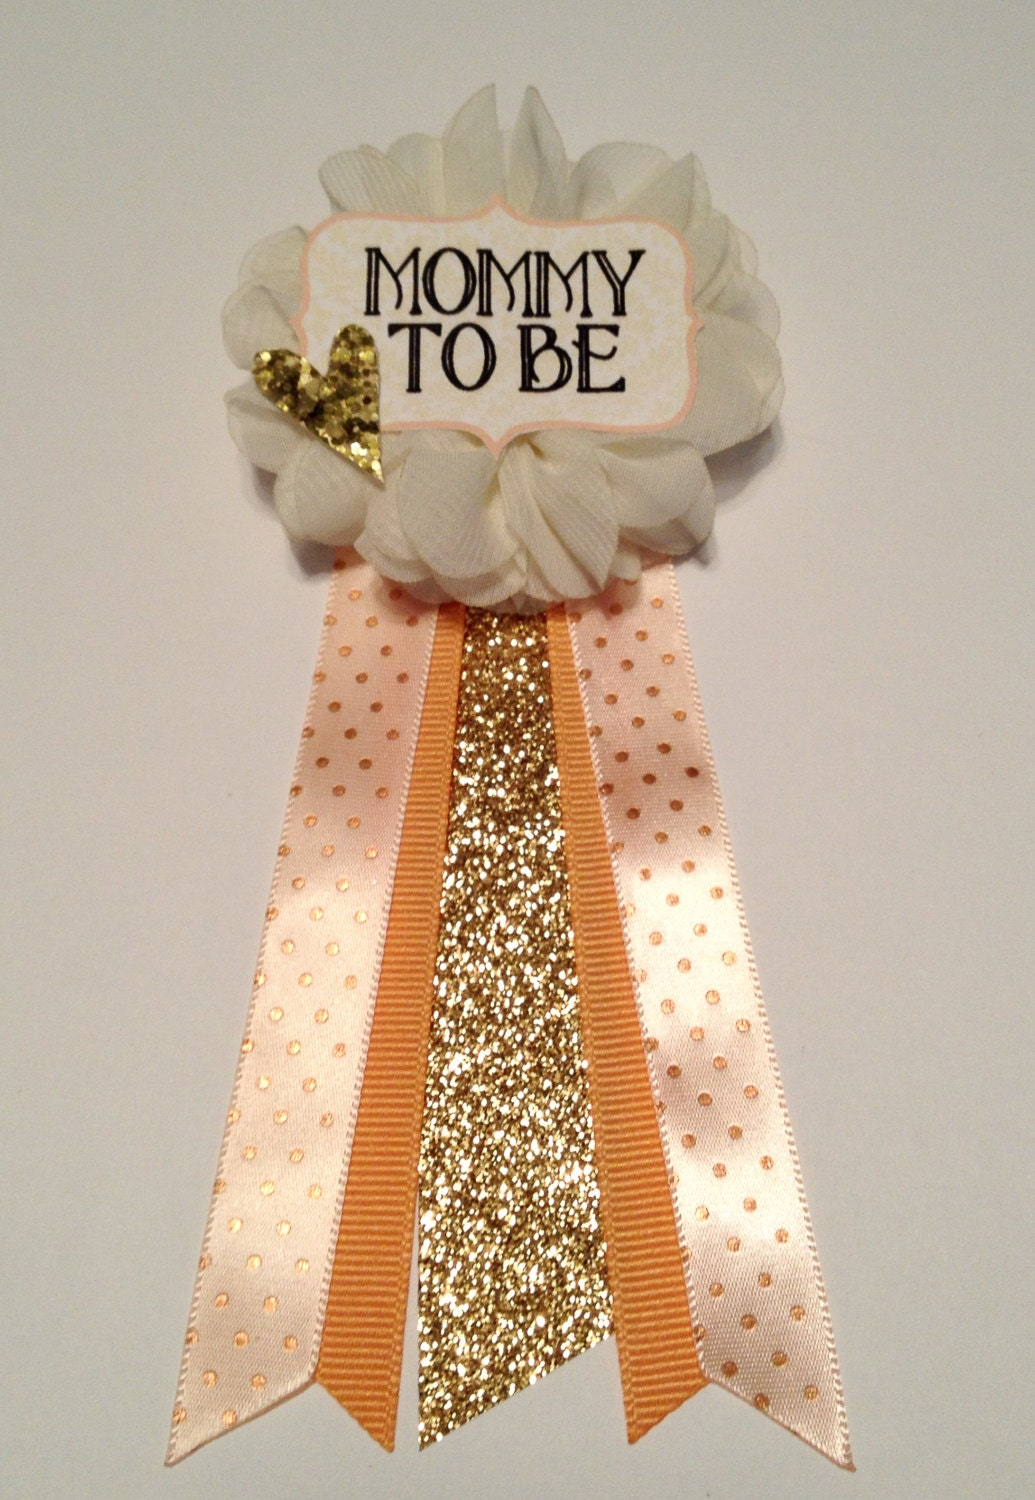 peach gold baby shower pin mommy to be pin flower ribbon pin